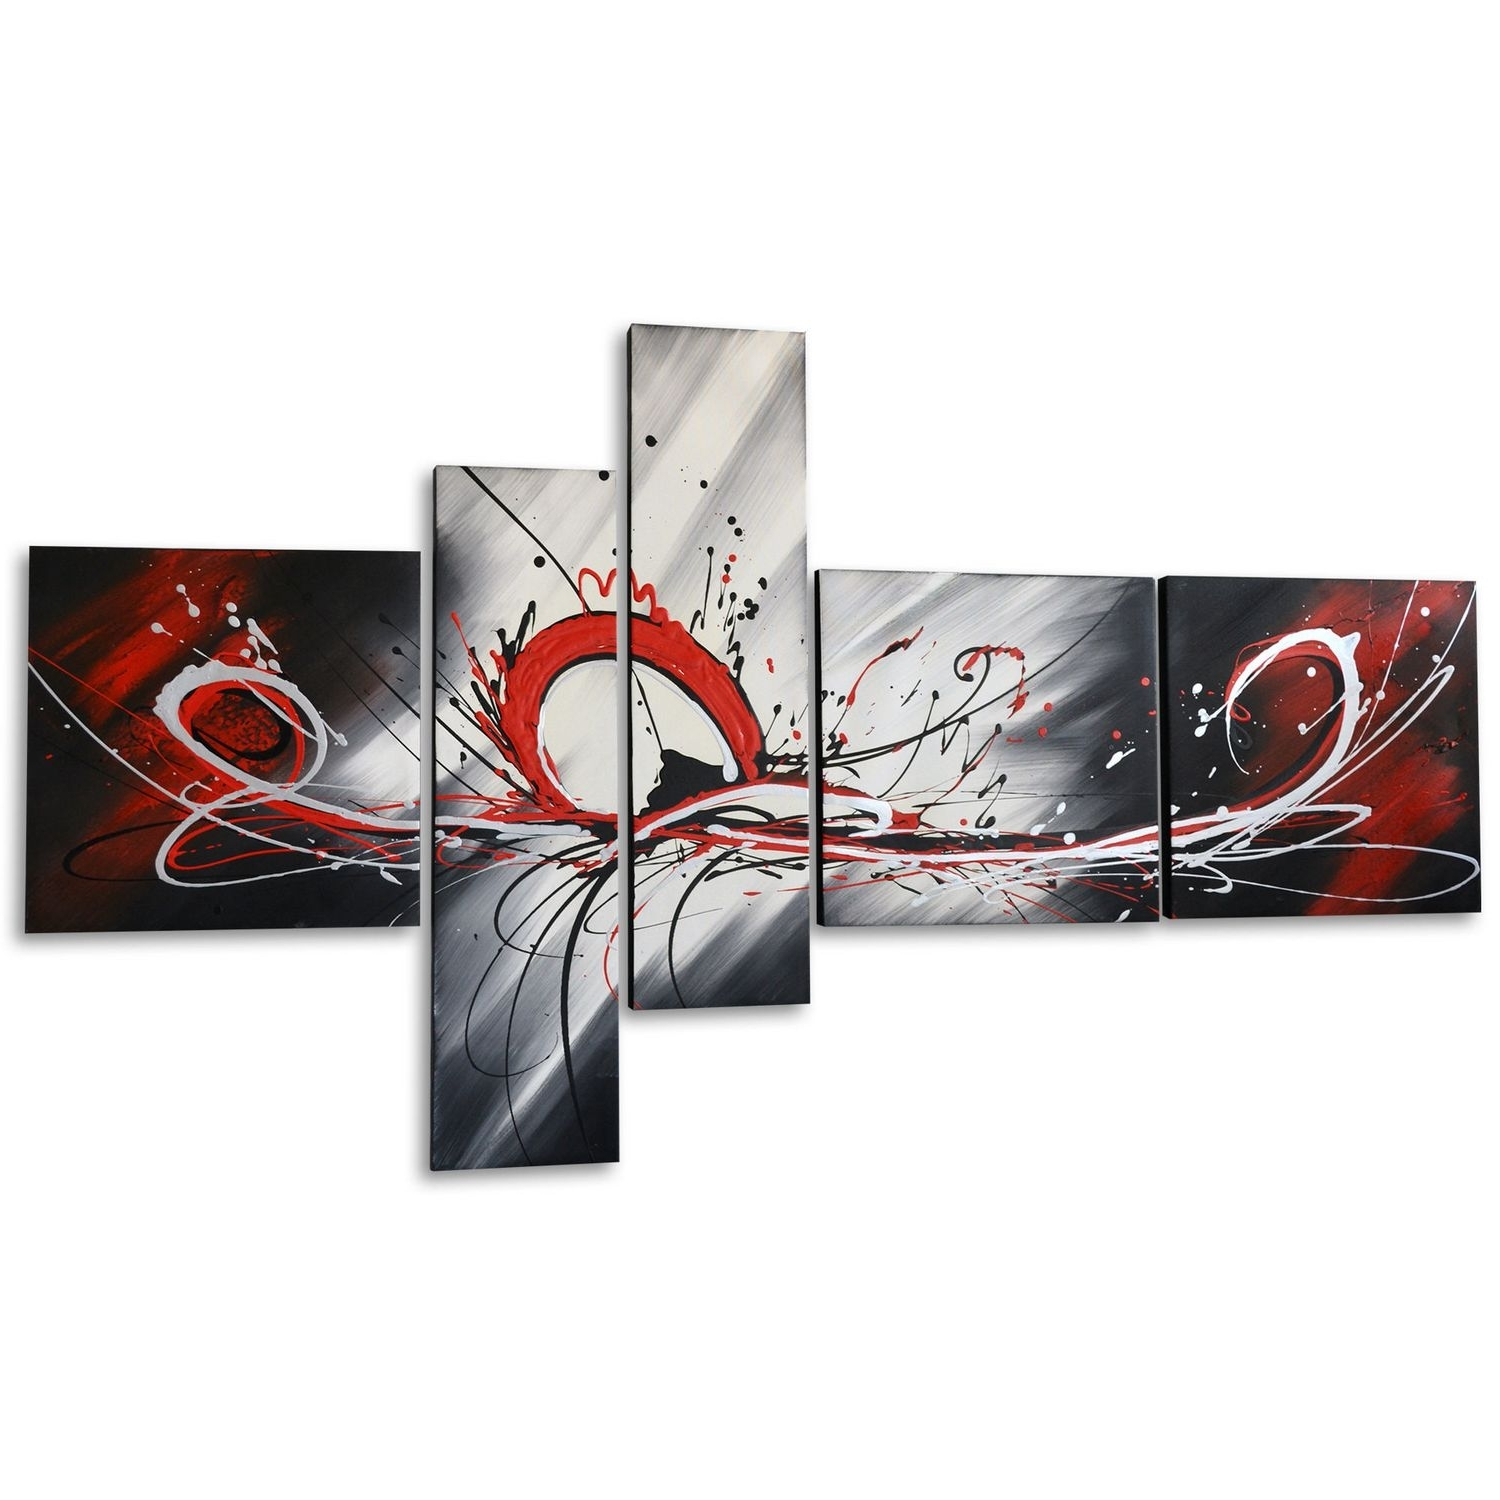 Canvas Wall Art In Canada Pertaining To Famous Design Art – Red Splash Hand Painted Textured Oil Painting On (View 8 of 15)